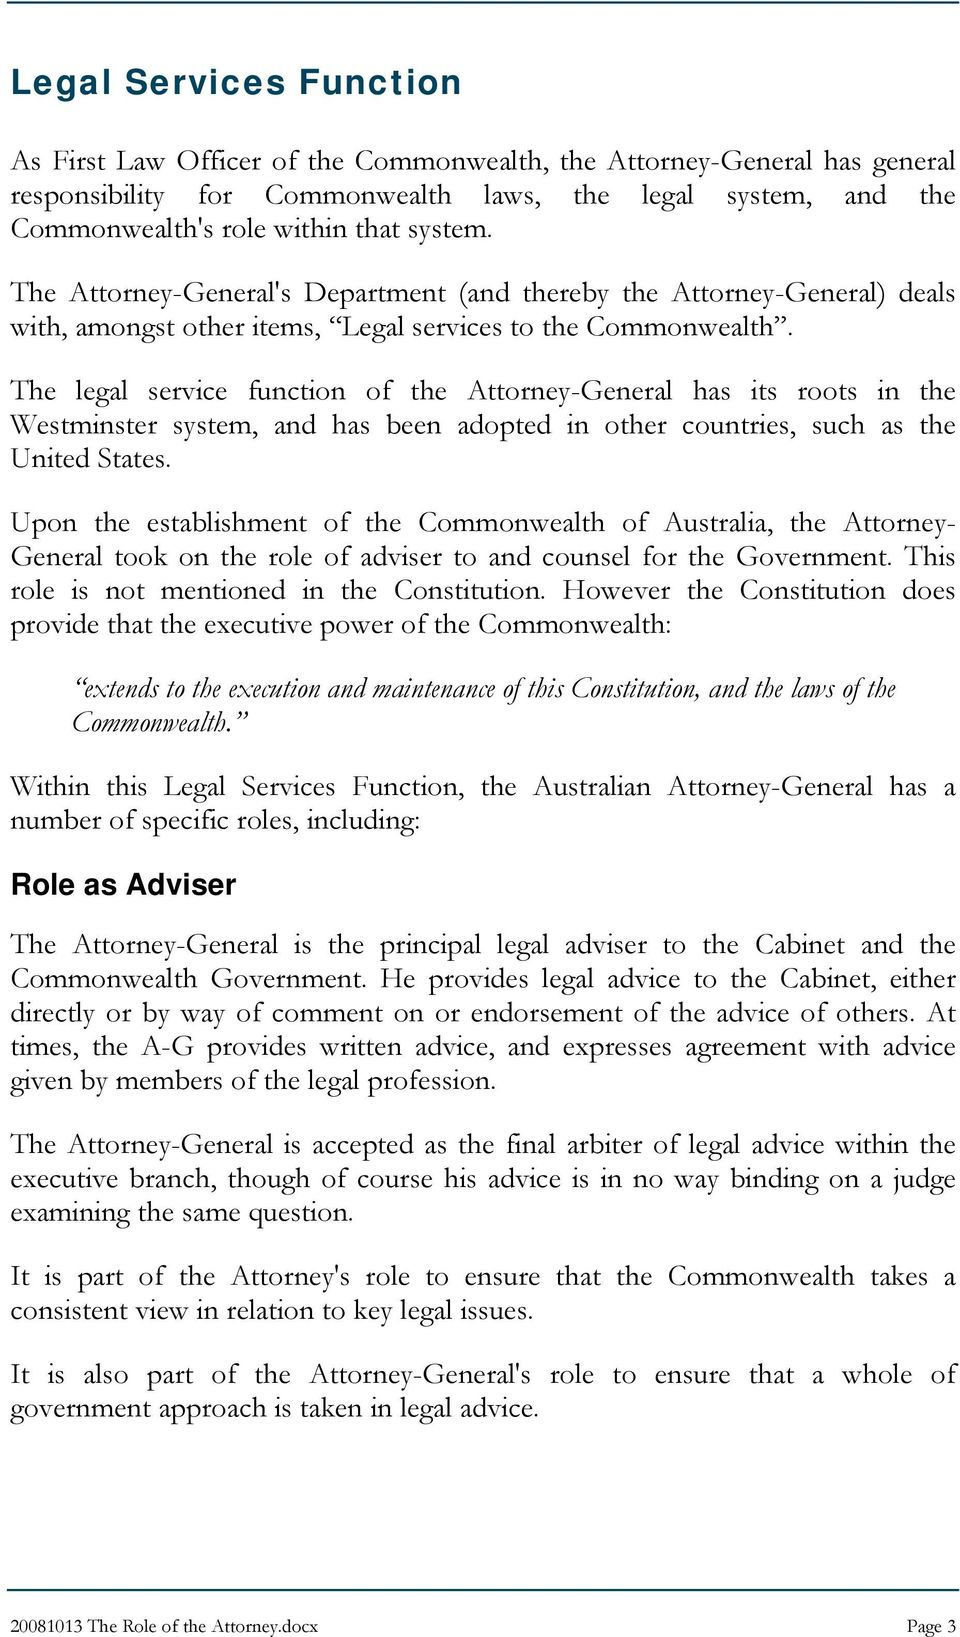 The legal service function of the Attorney-General has its roots in the Westminster system, and has been adopted in other countries, such as the United States.